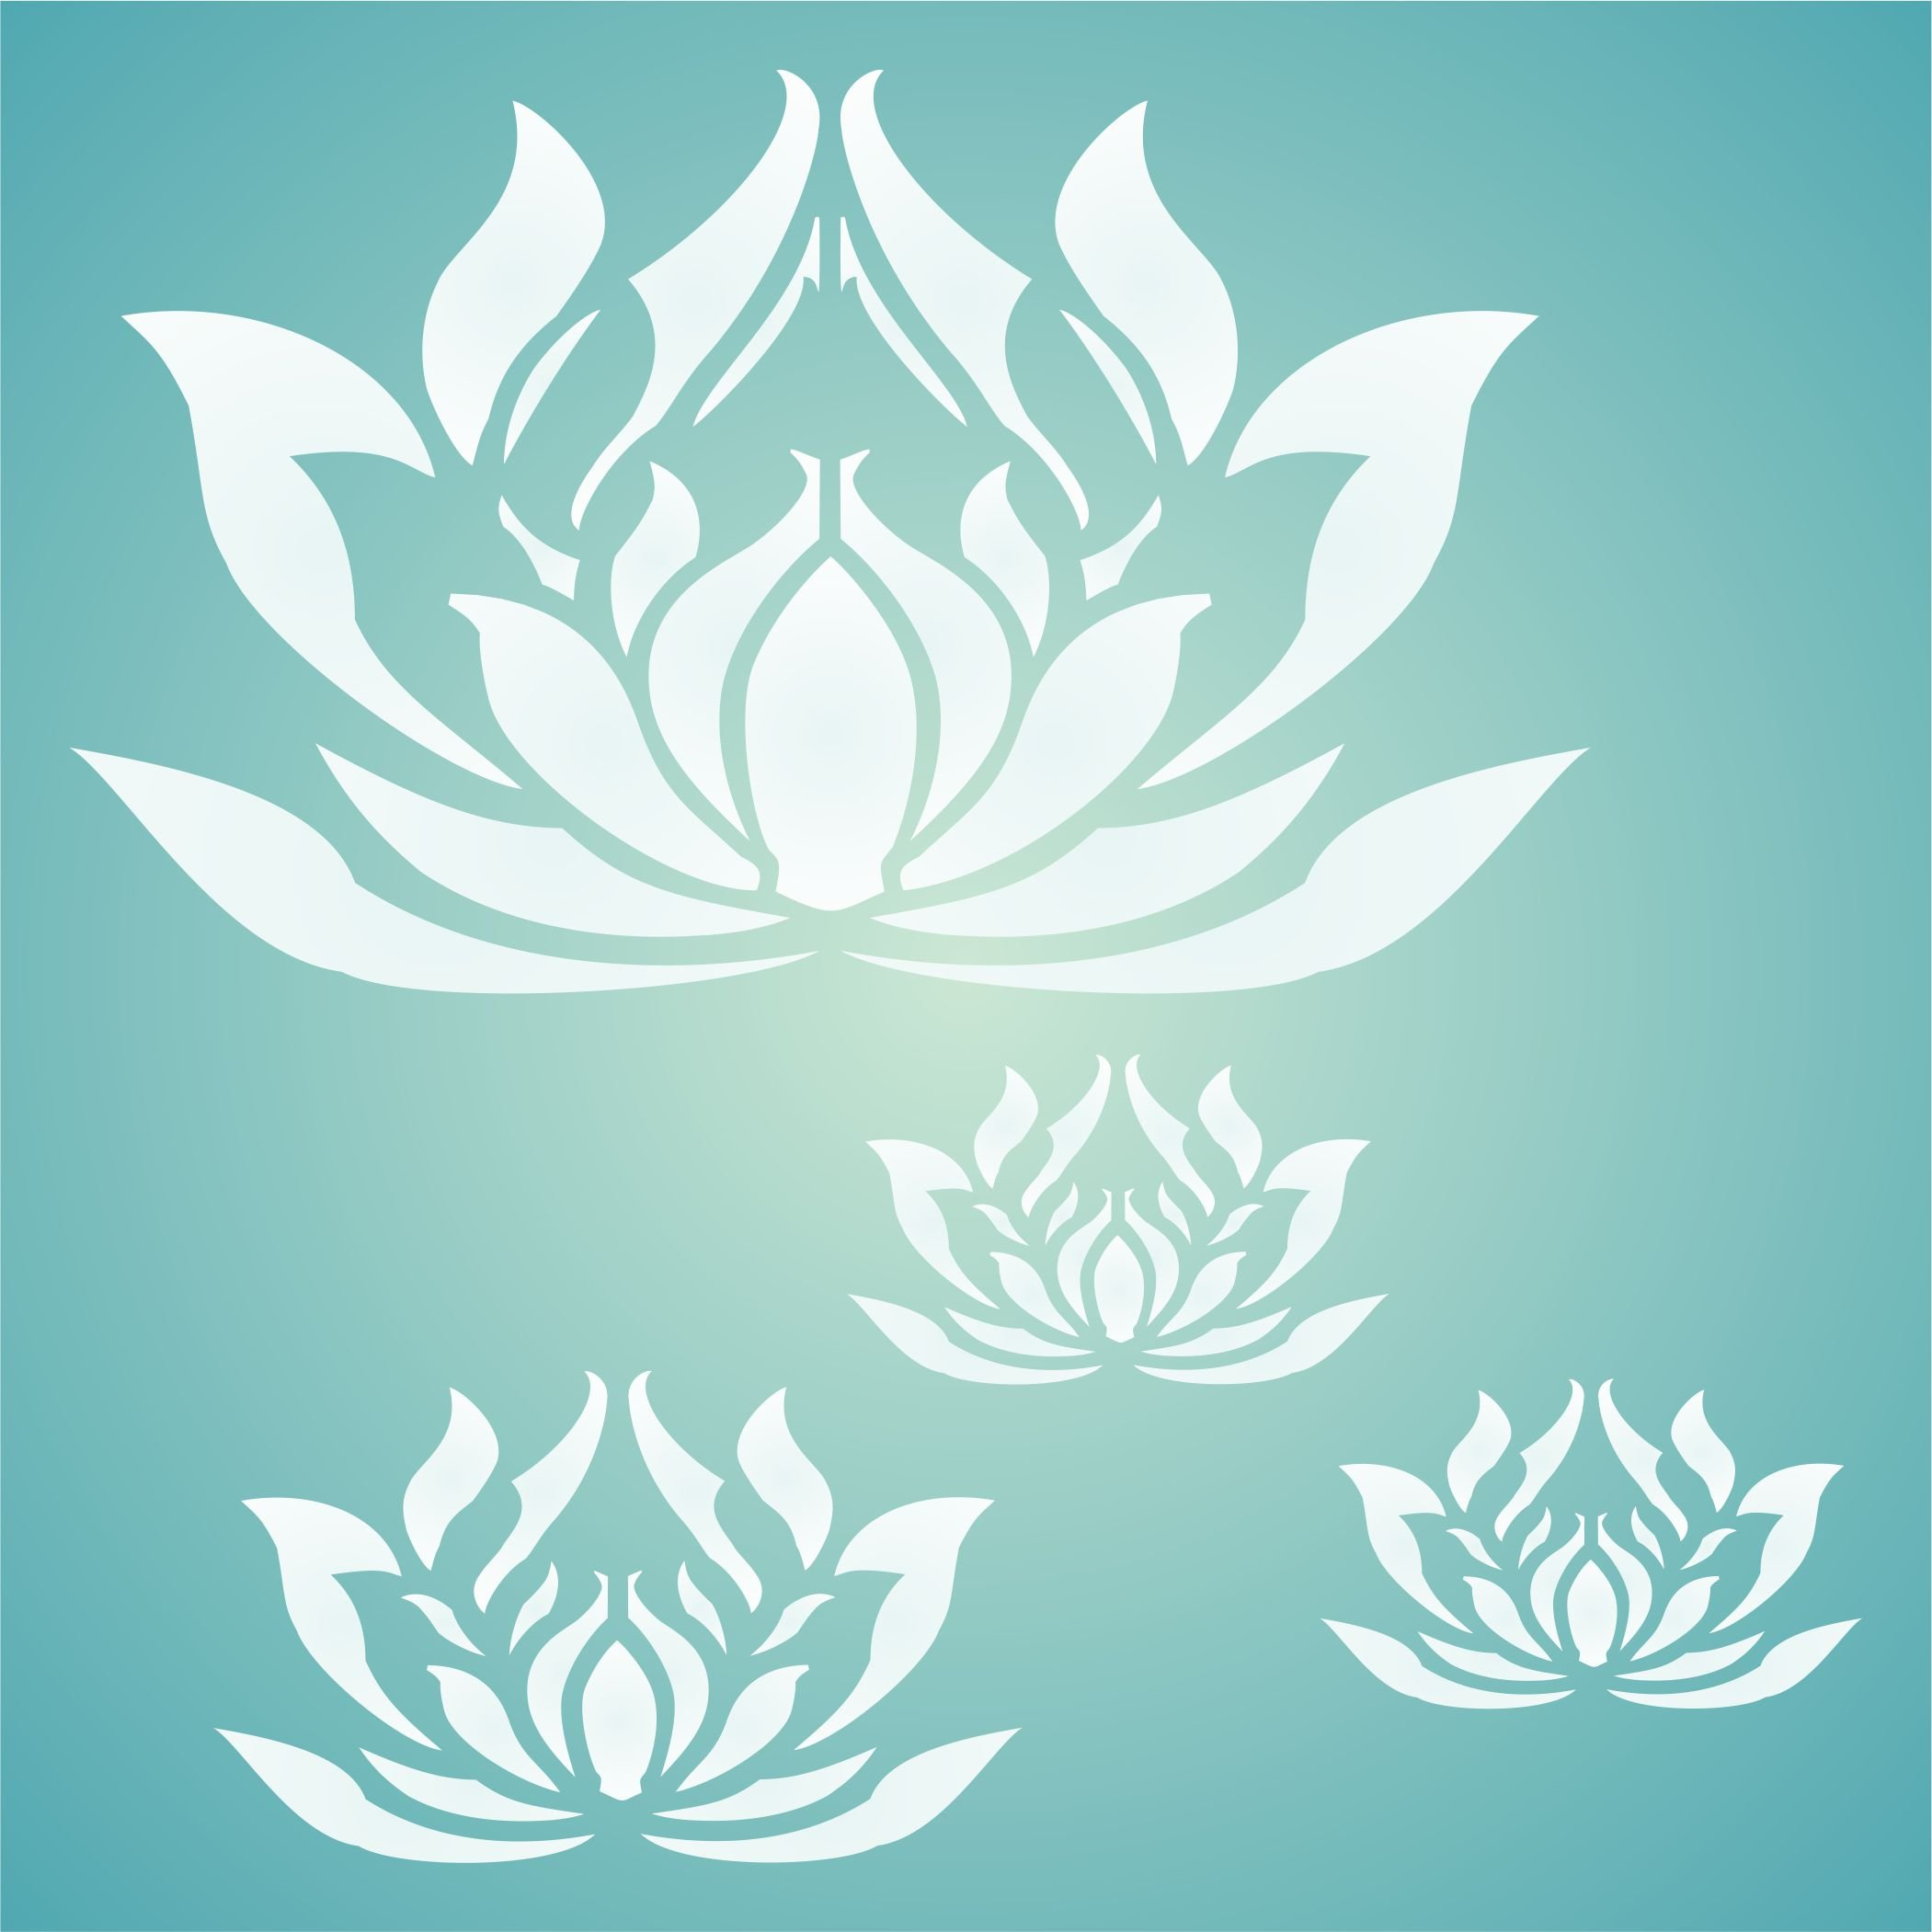 LOTUS FLOWERS STENCIL (size 14''w x 14''h) Reusable Stencils for Painting - Best Quality Scrapbooking Wall Art Décor Ideas - Use on Walls, Floors, Fabrics, Glass, Wood, Posters, and More...